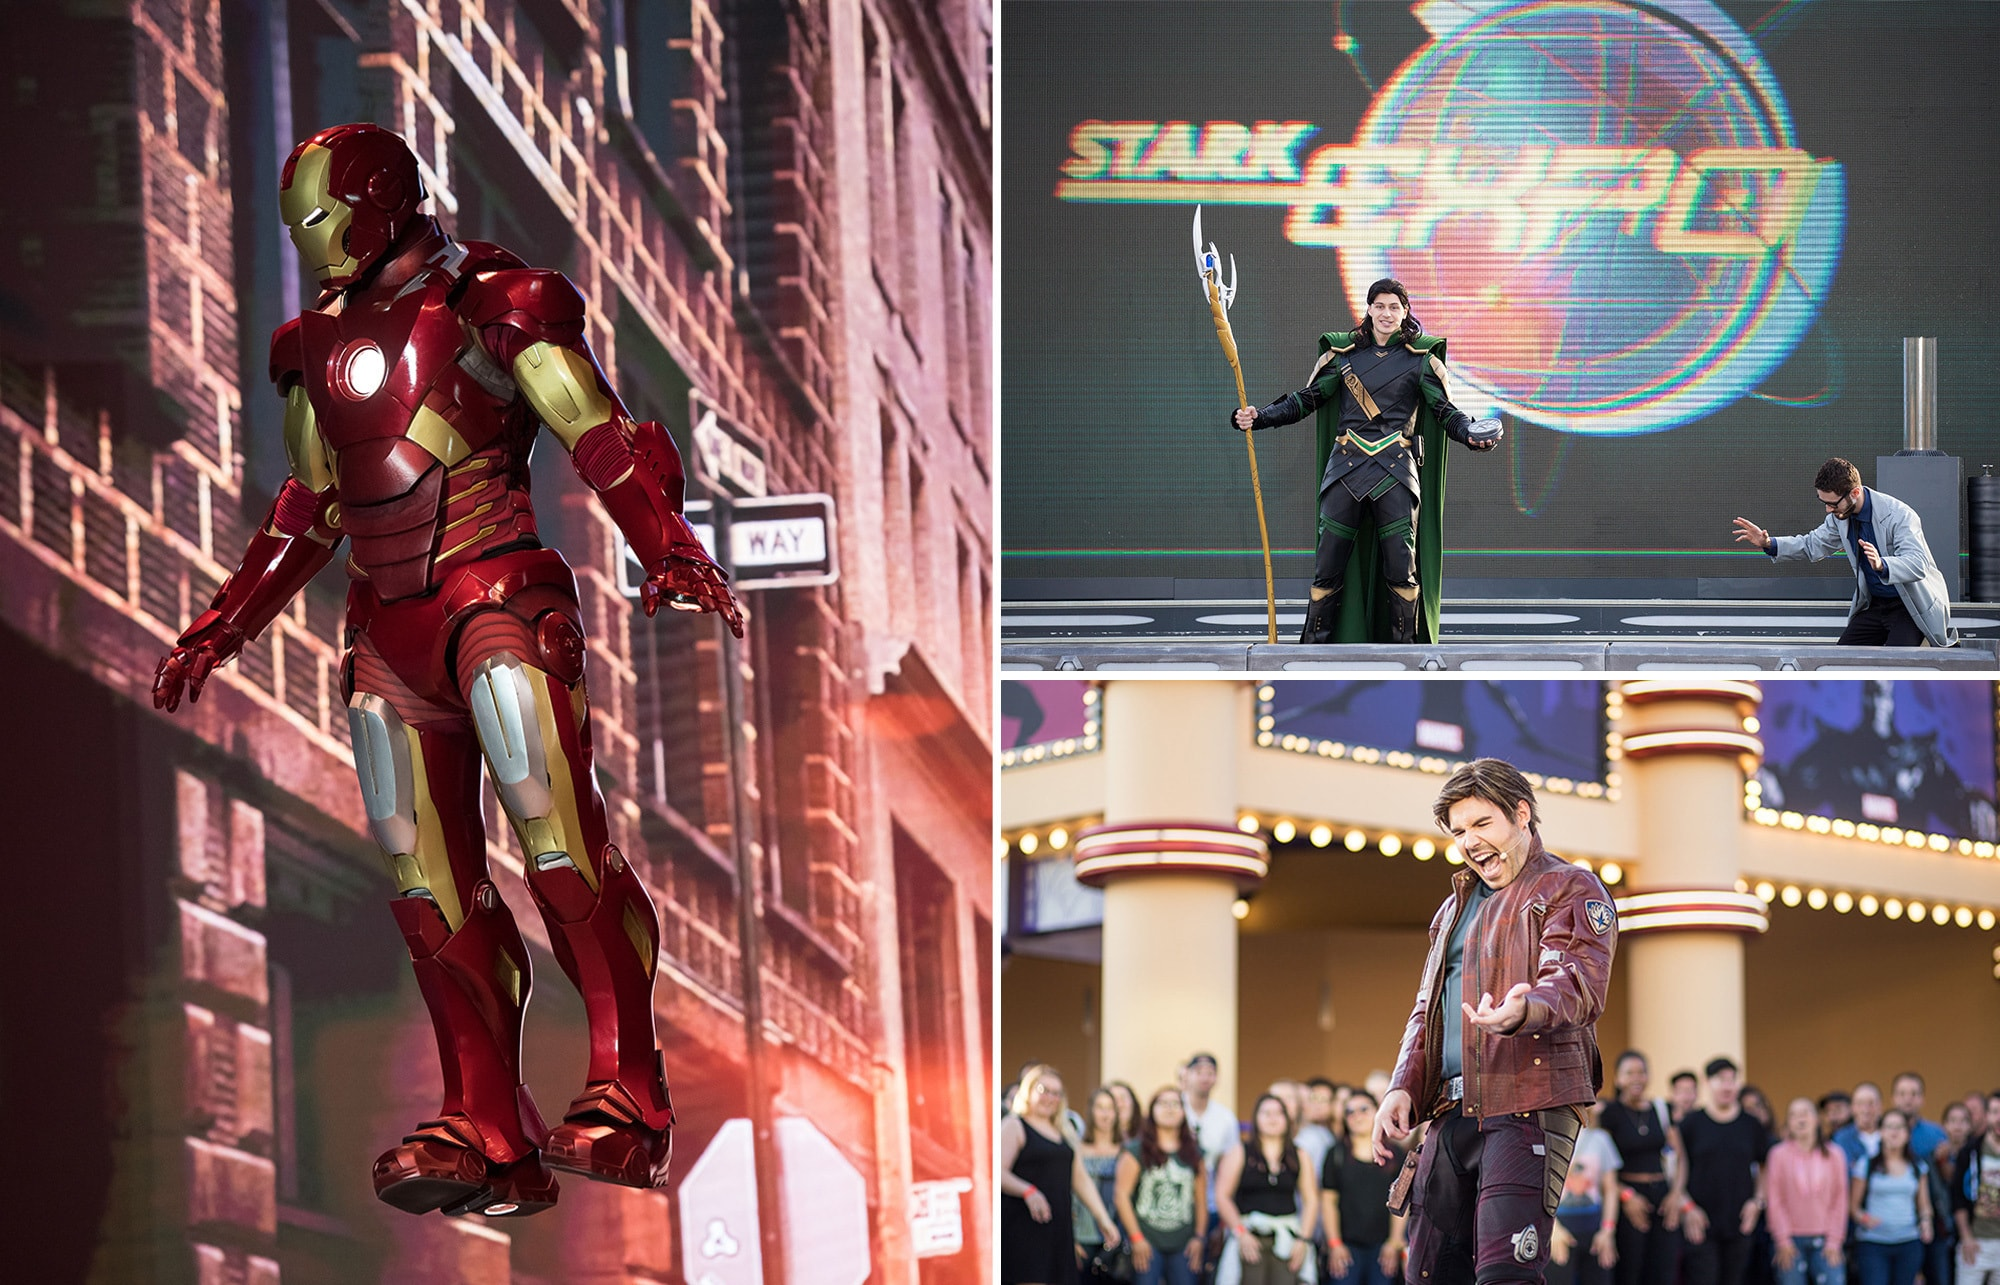 Marvel stage show featuring Iron-Man and Loki and Peter Quill displaying his dance moves